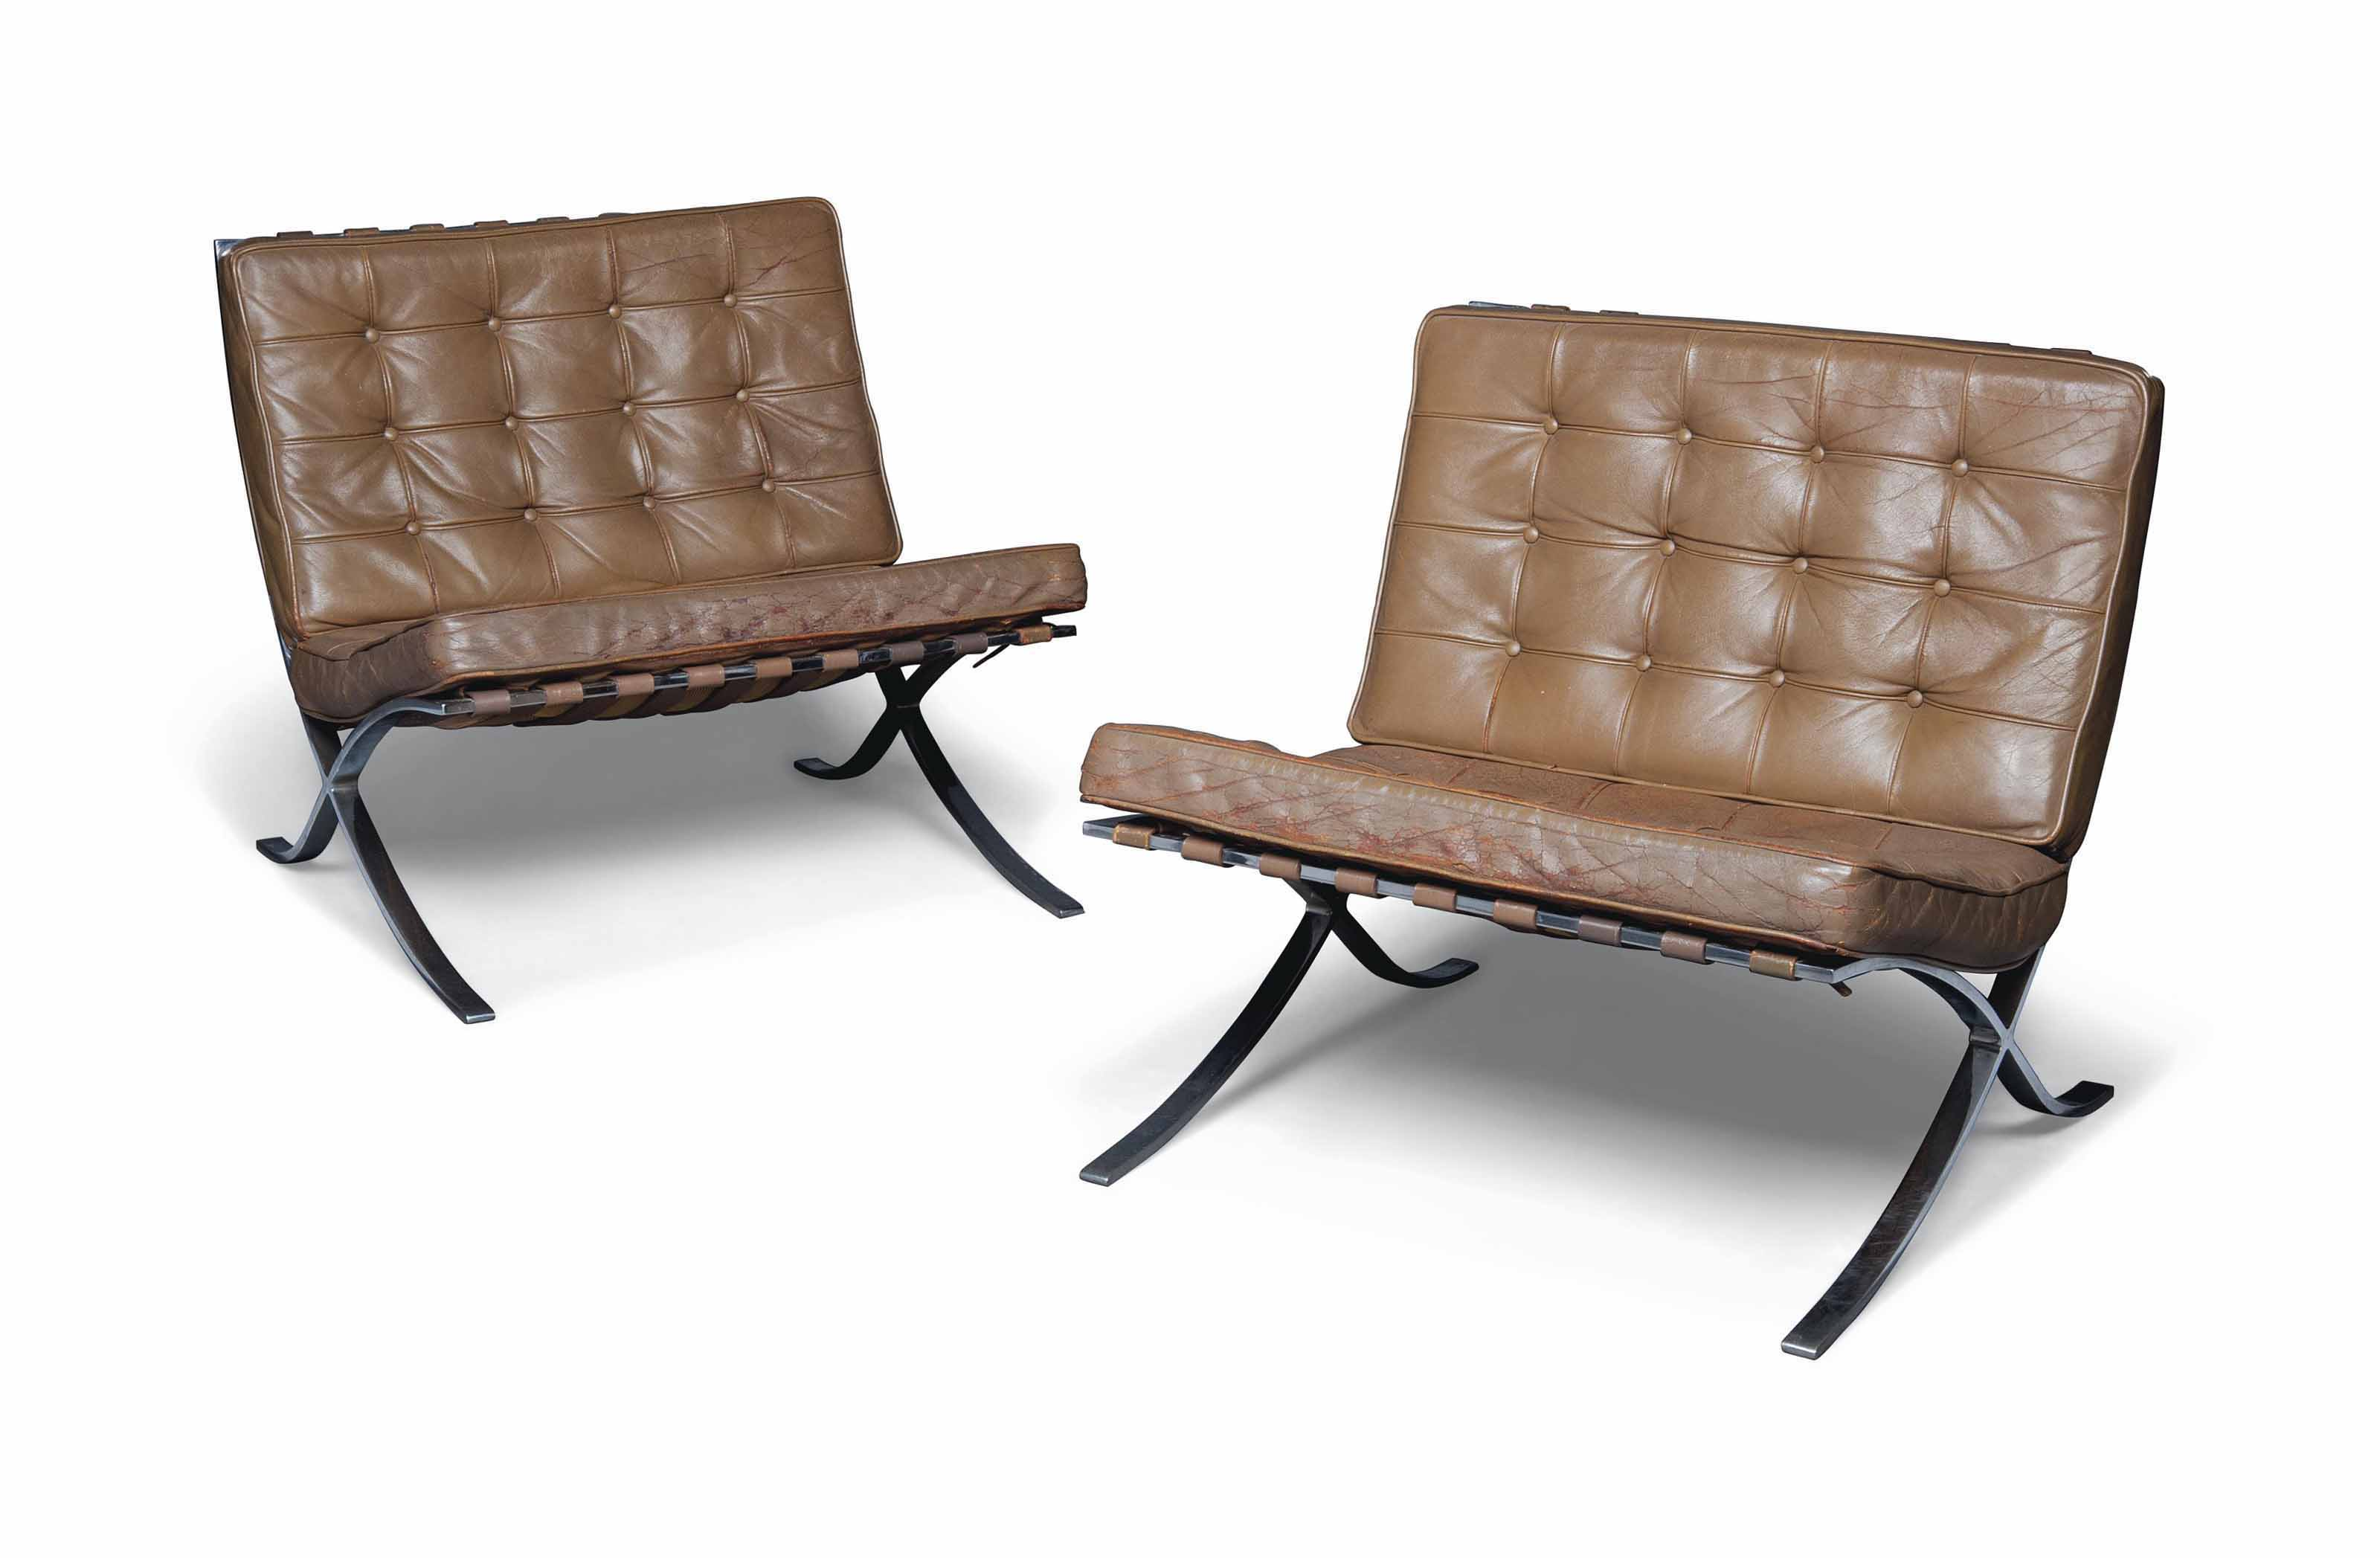 Picture of: A Pair Of Chromed Steel And Tan Leather Barcelona Chairs Designed By Ludwig Mies Van Der Rohe In 1929 Of Later Manufacture 20th Century Furniture Lighting Christie S